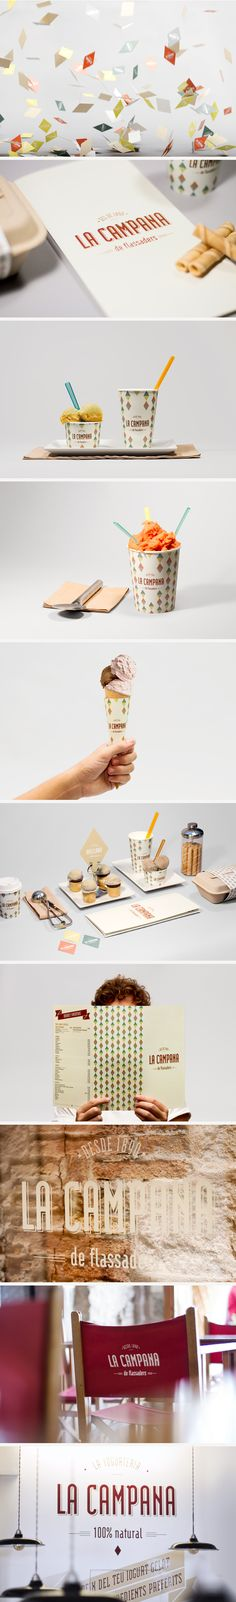 La Campana | Comité Studio #packaging #branding #marketing PD